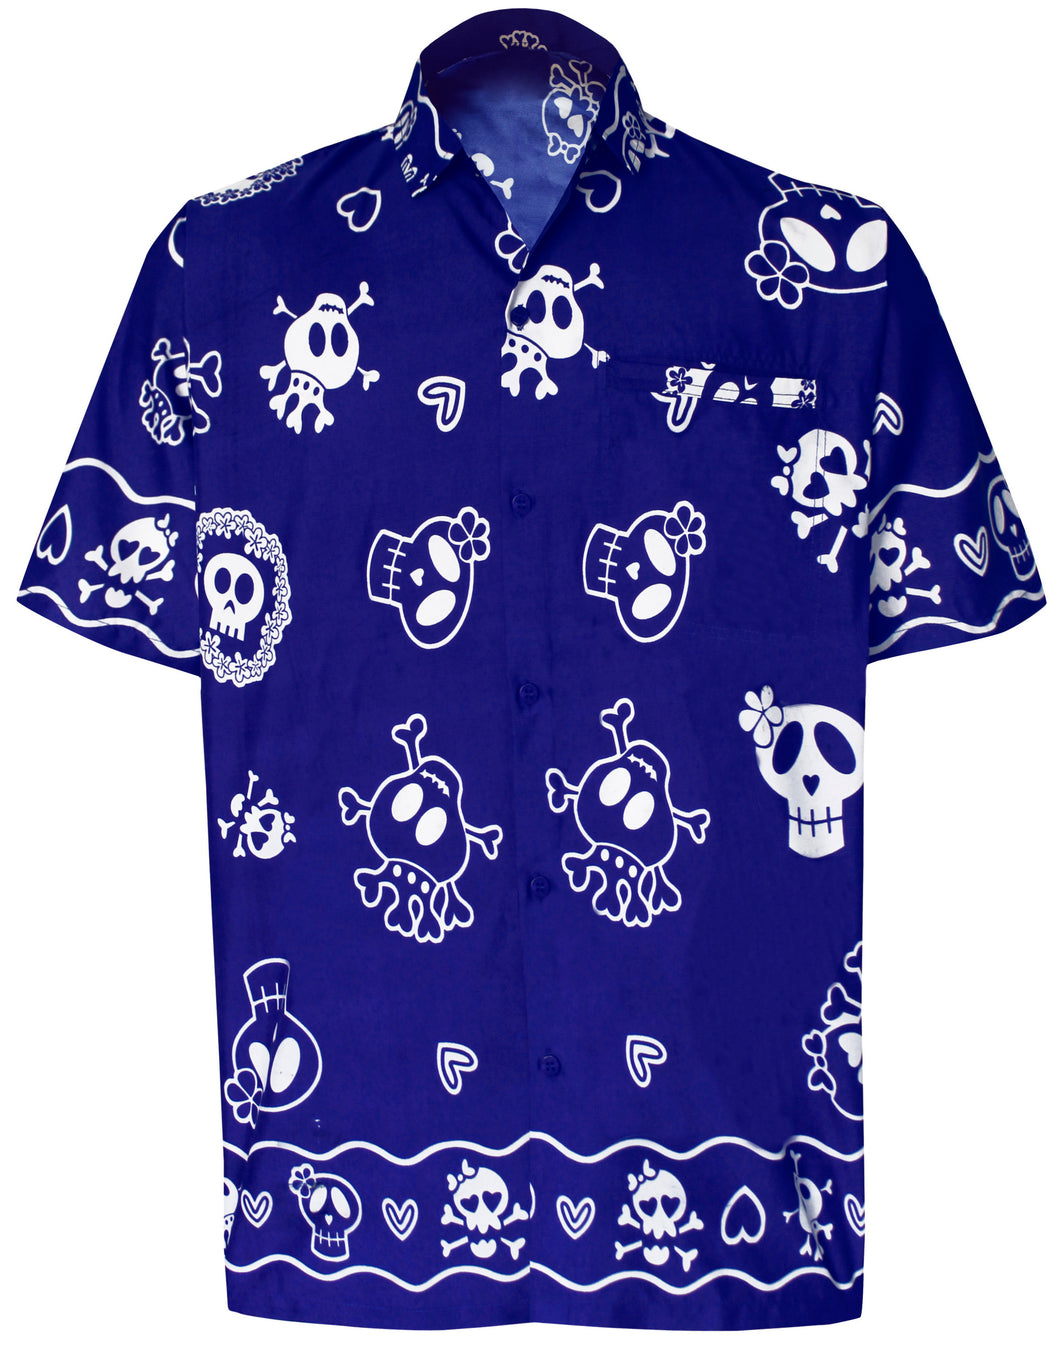 la-leela-regular-size-beach-hawaiian-shirt-for-aloha-tropical-beach-front-pocket-short-sleeve-for-men-blue